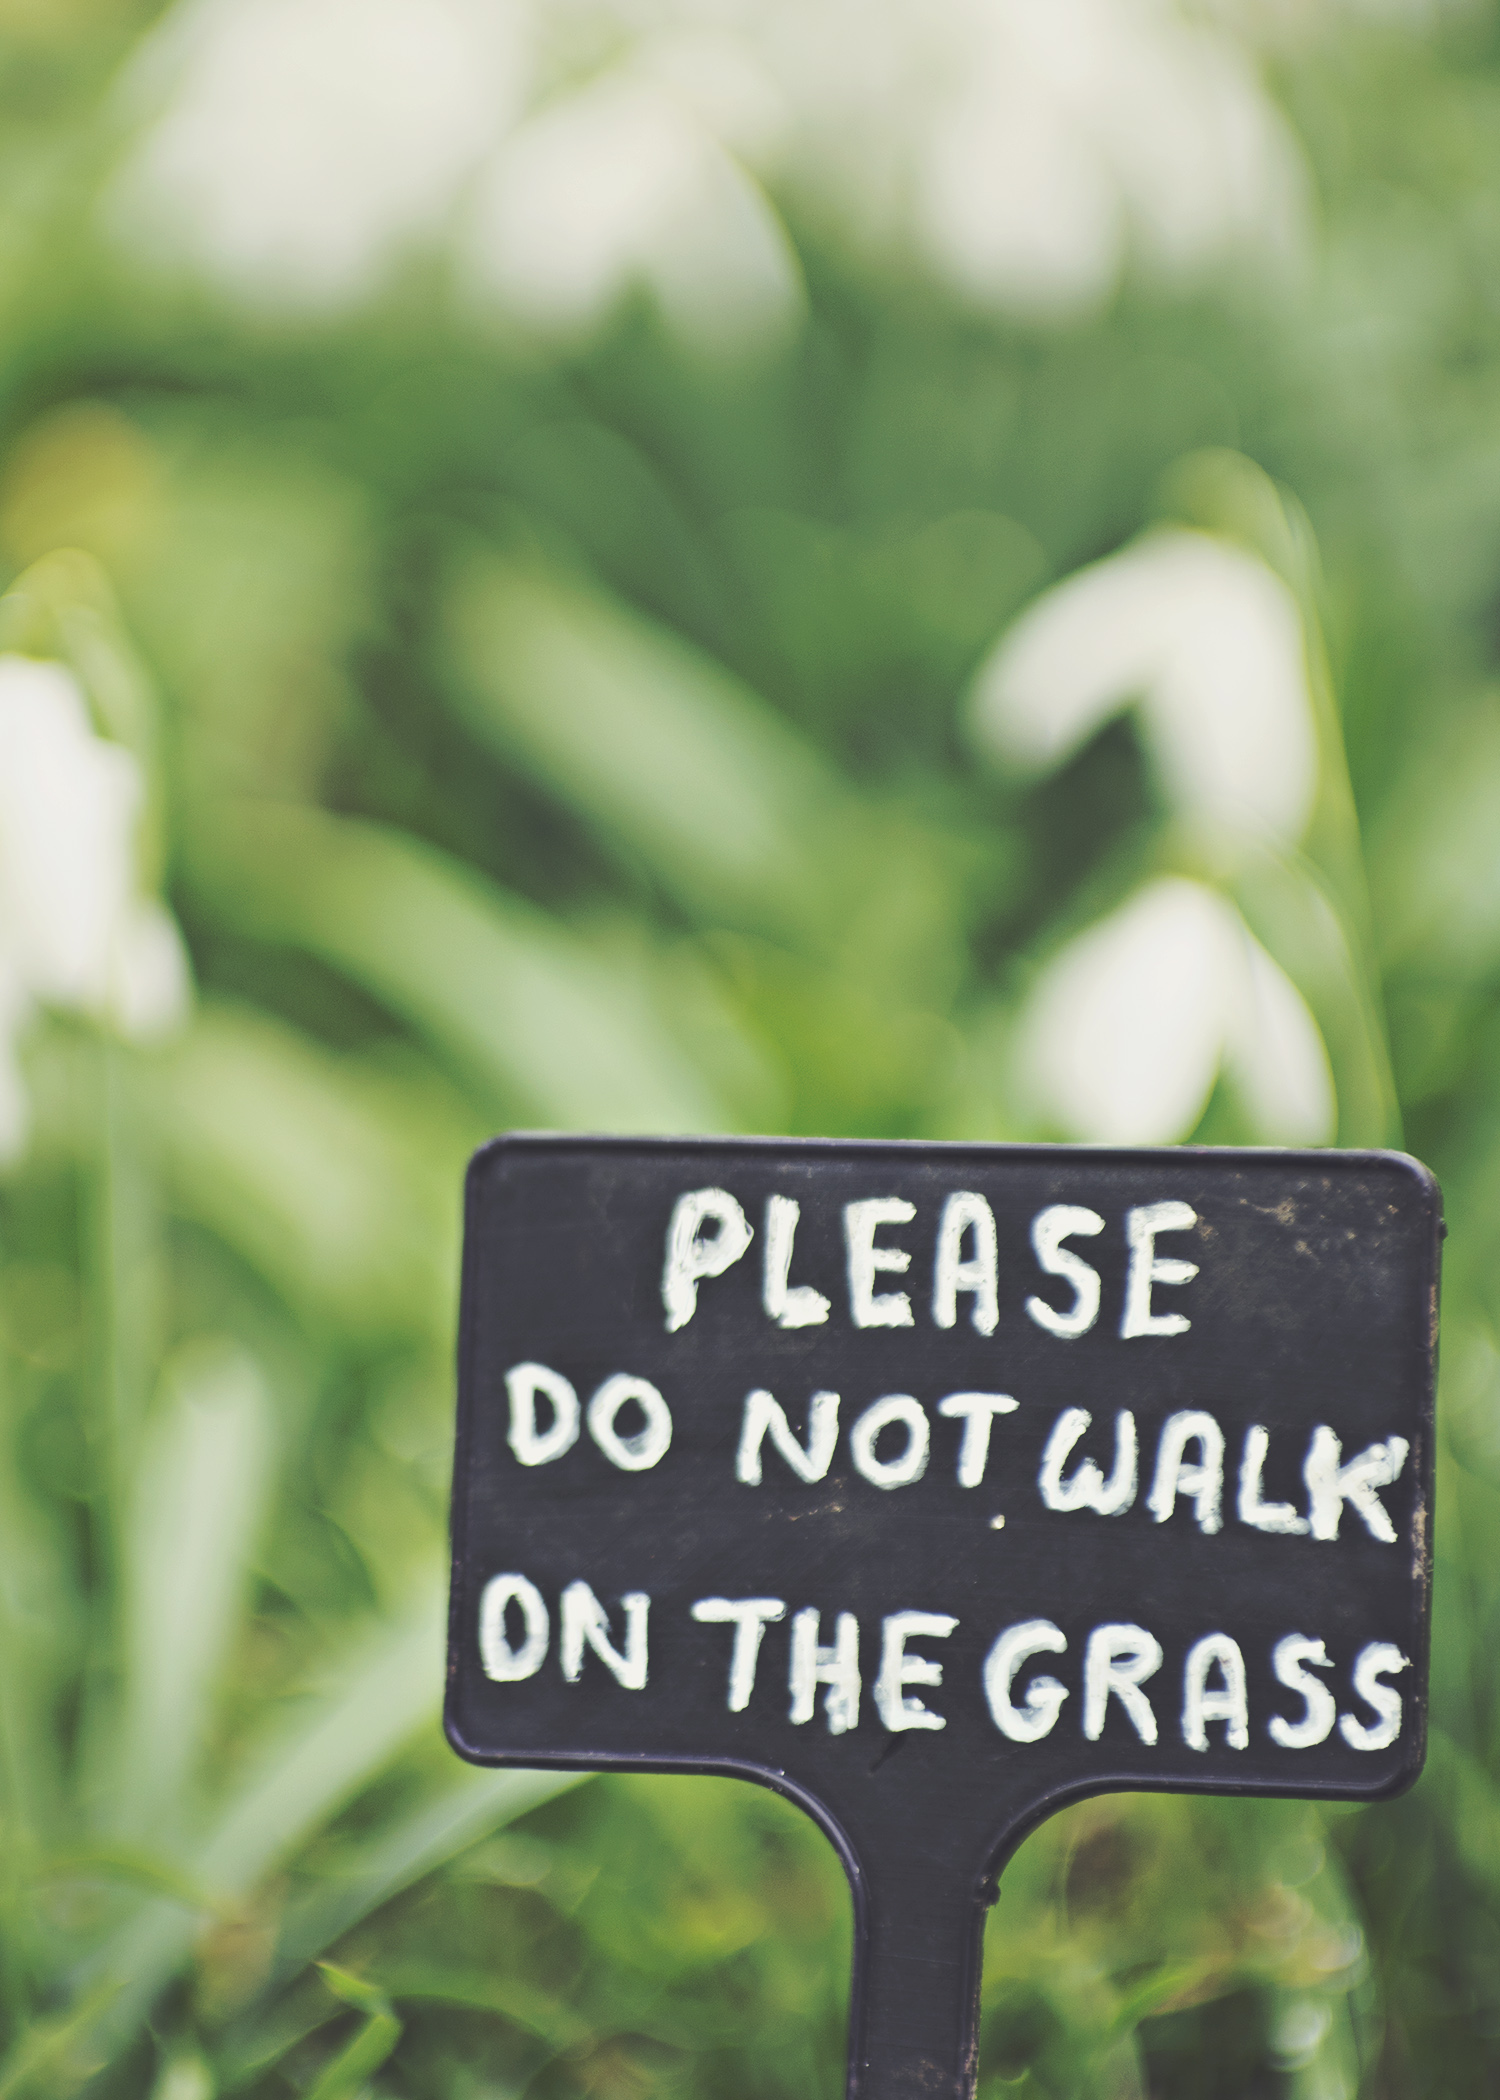 Don't walk on the grass